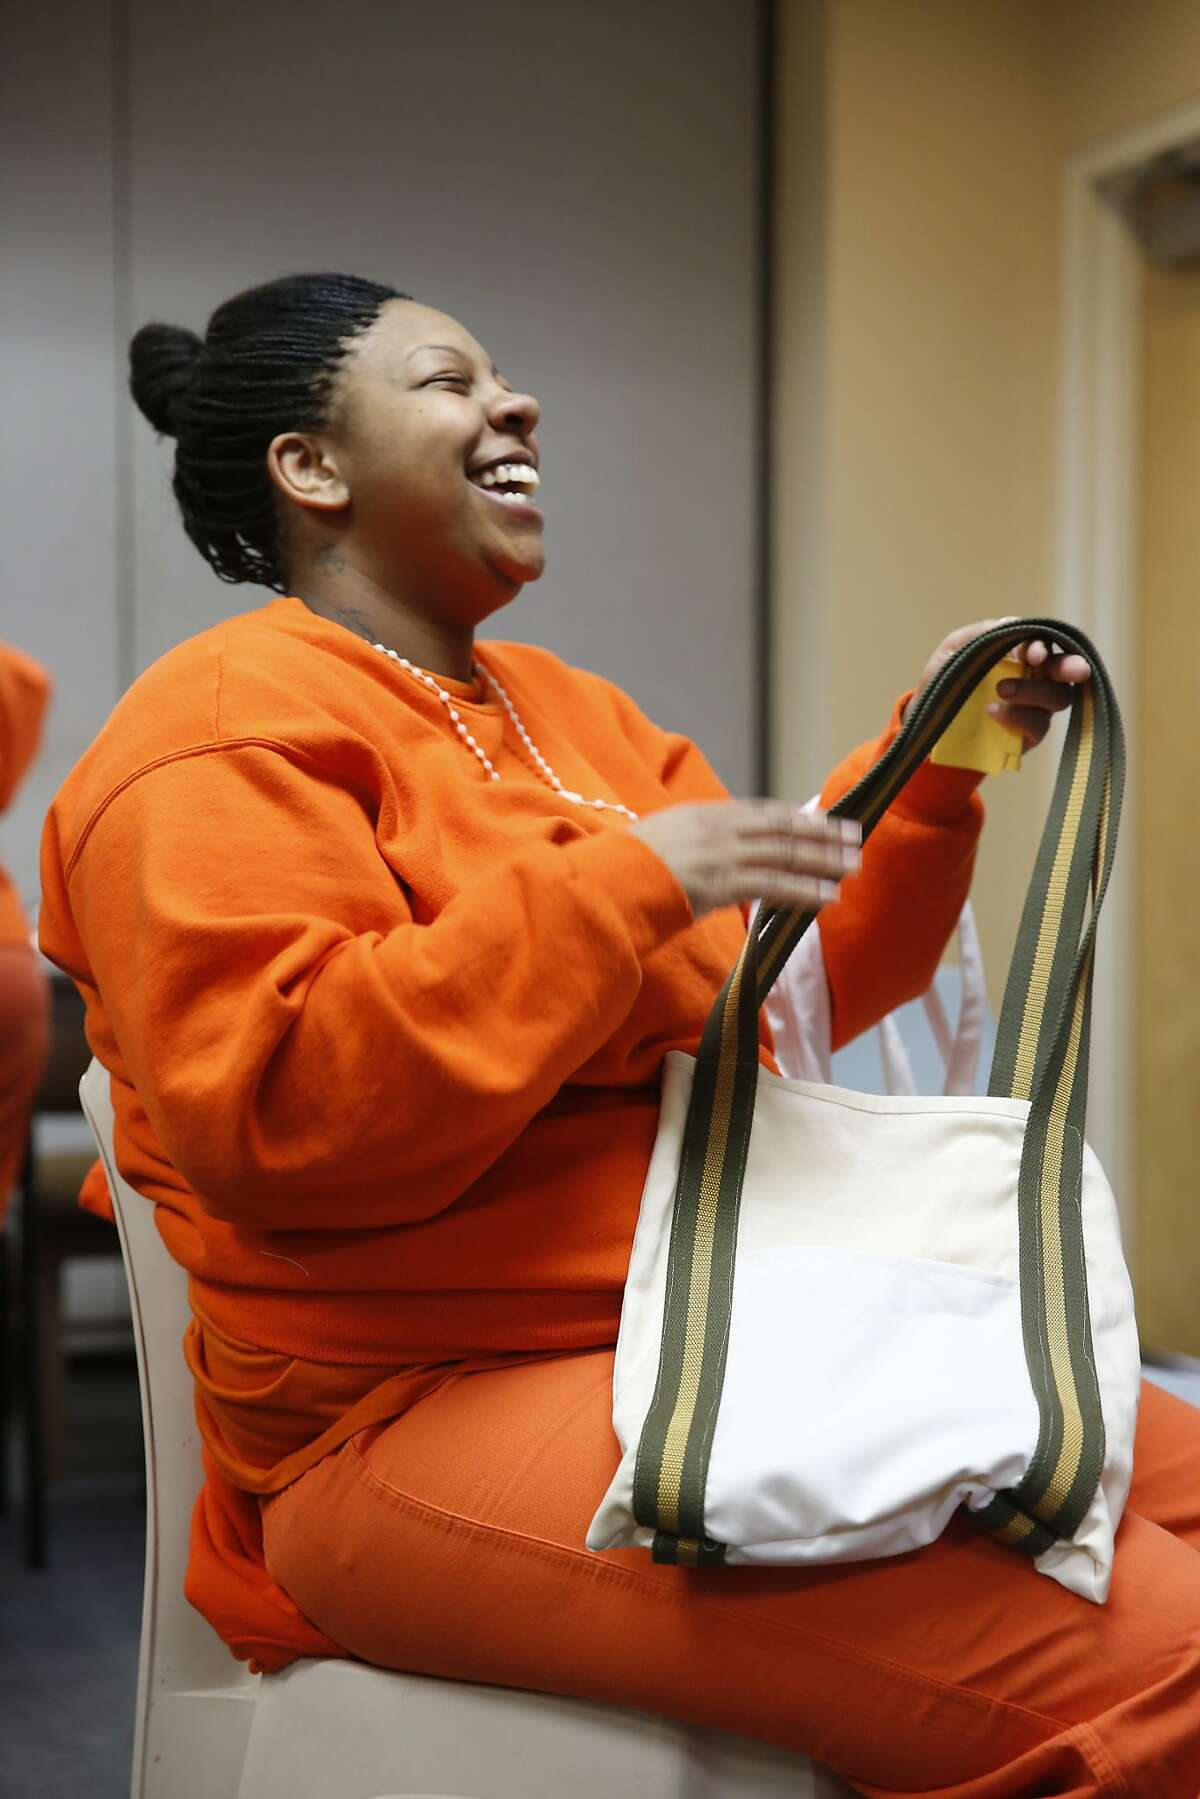 After finishing six weeks of sewing instruction at the San Francisco County Jail, inmate Johnetta Dixon shows off one of her creations on the last day of class on Monday May 11, 2015 in San Francisco, Calif. Dixon finished six weeks of sewing instruction at the county jail and hopes to use her new skills in the future.